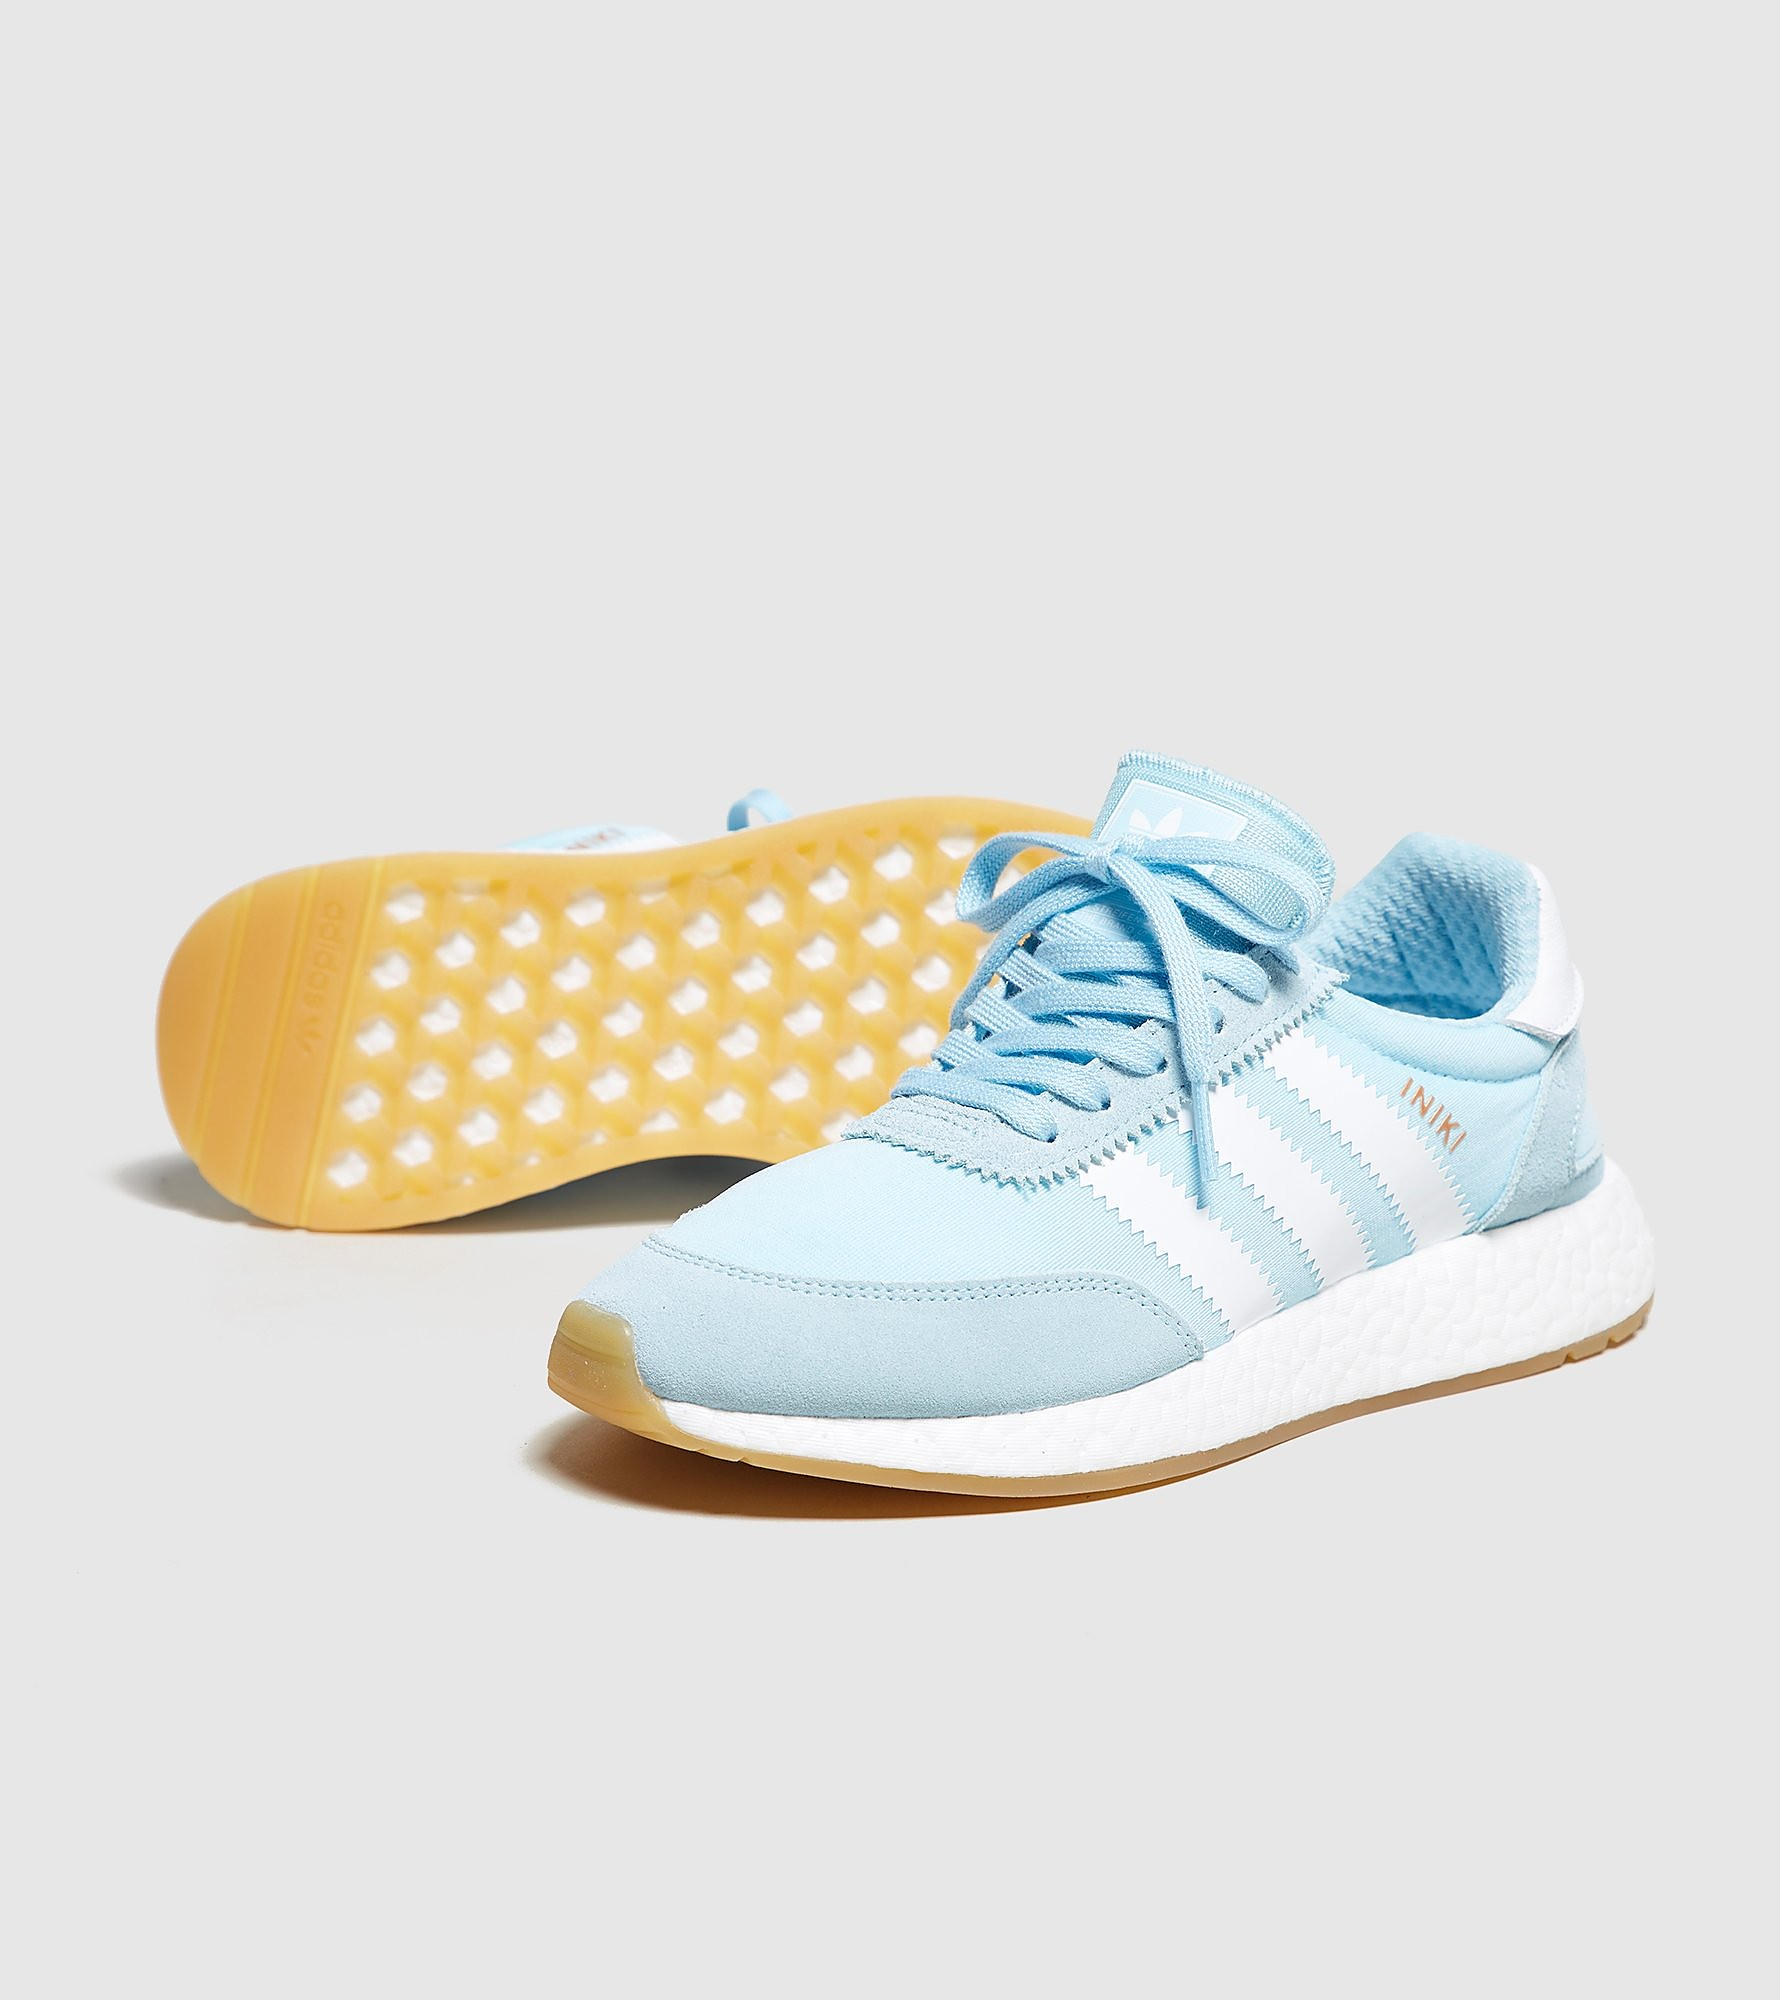 adidas Originals Iniki Runner Women's